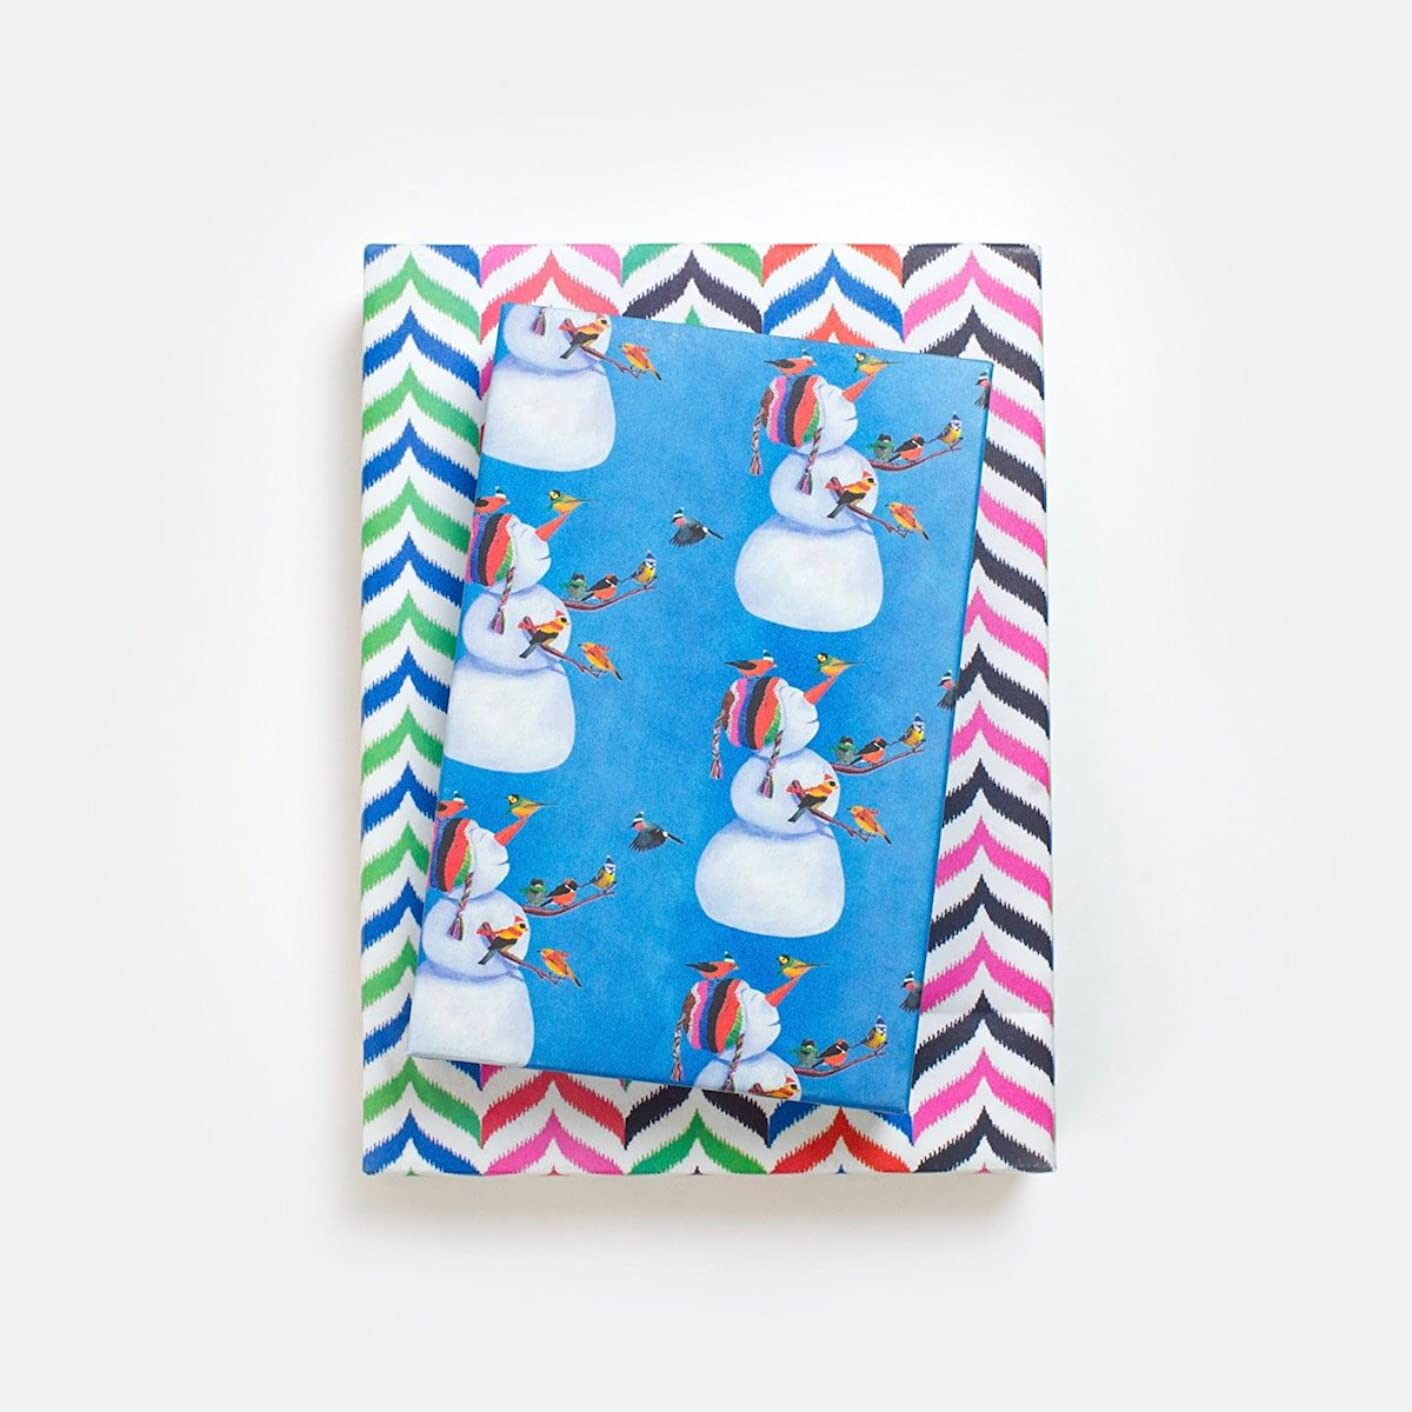 Snowman and Birds - Reversible Winter Wrapping Paper - Eco Gift Wrap Allport Editions x Wrappily